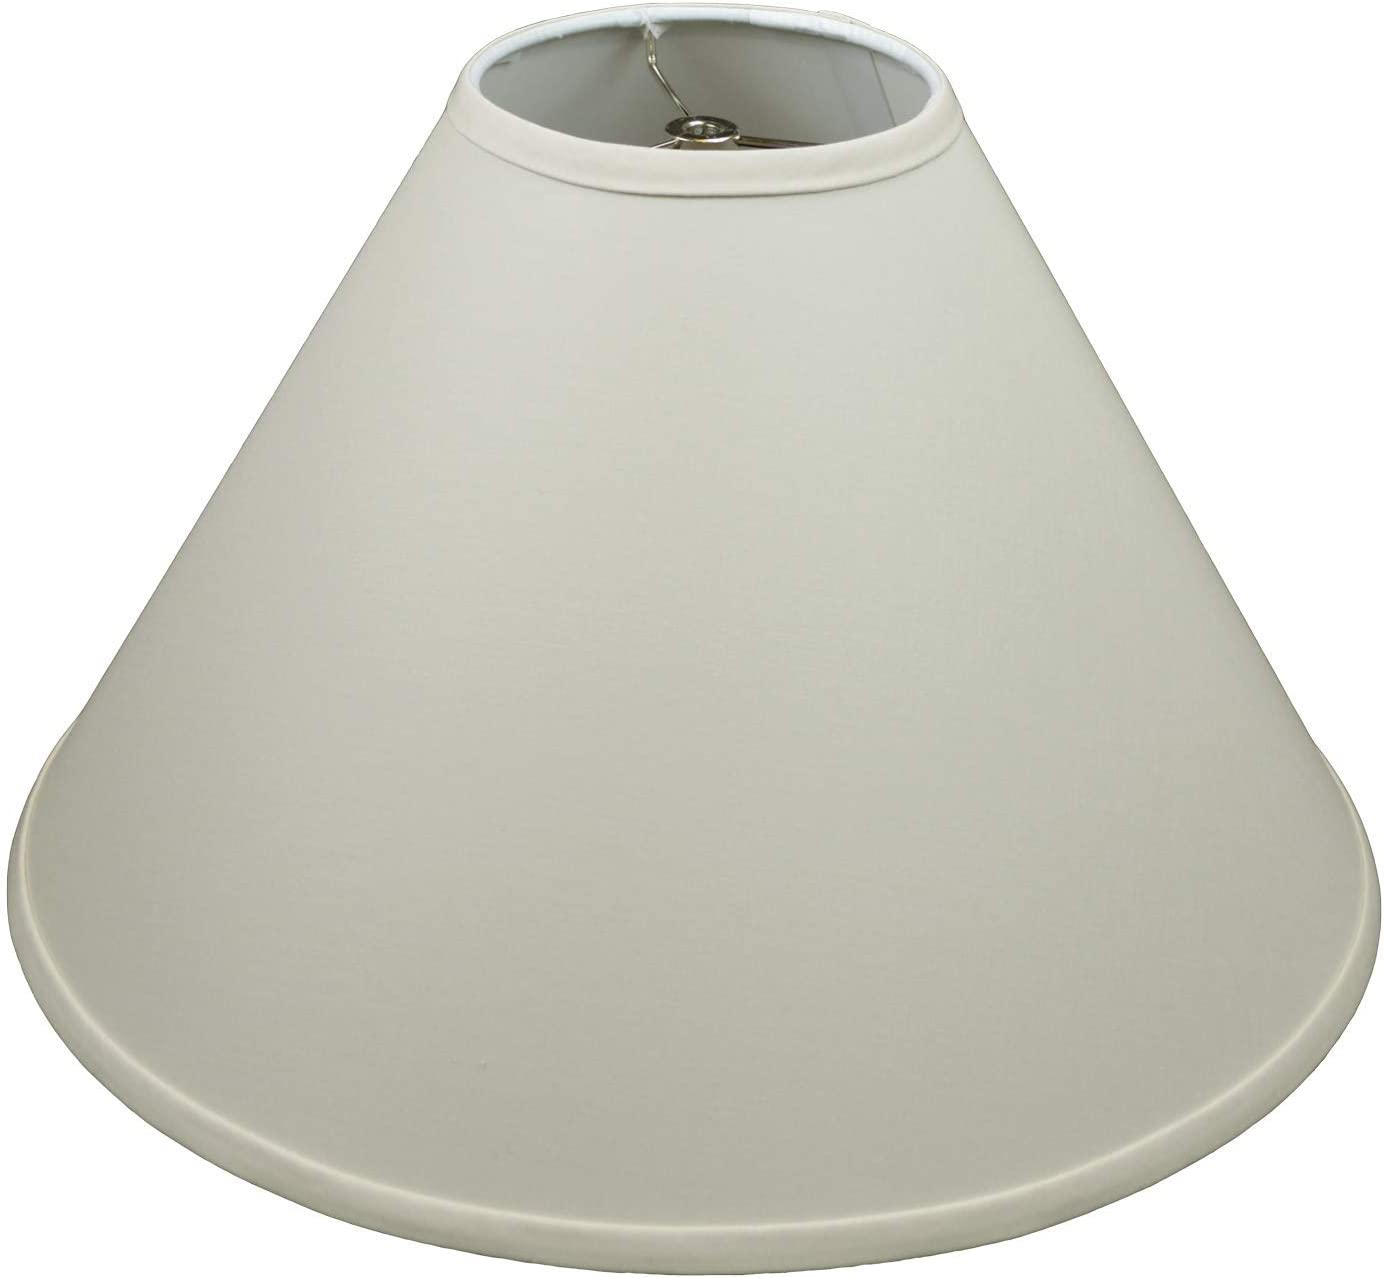 FenchelShades.com Lampshade Opening large release sale 6